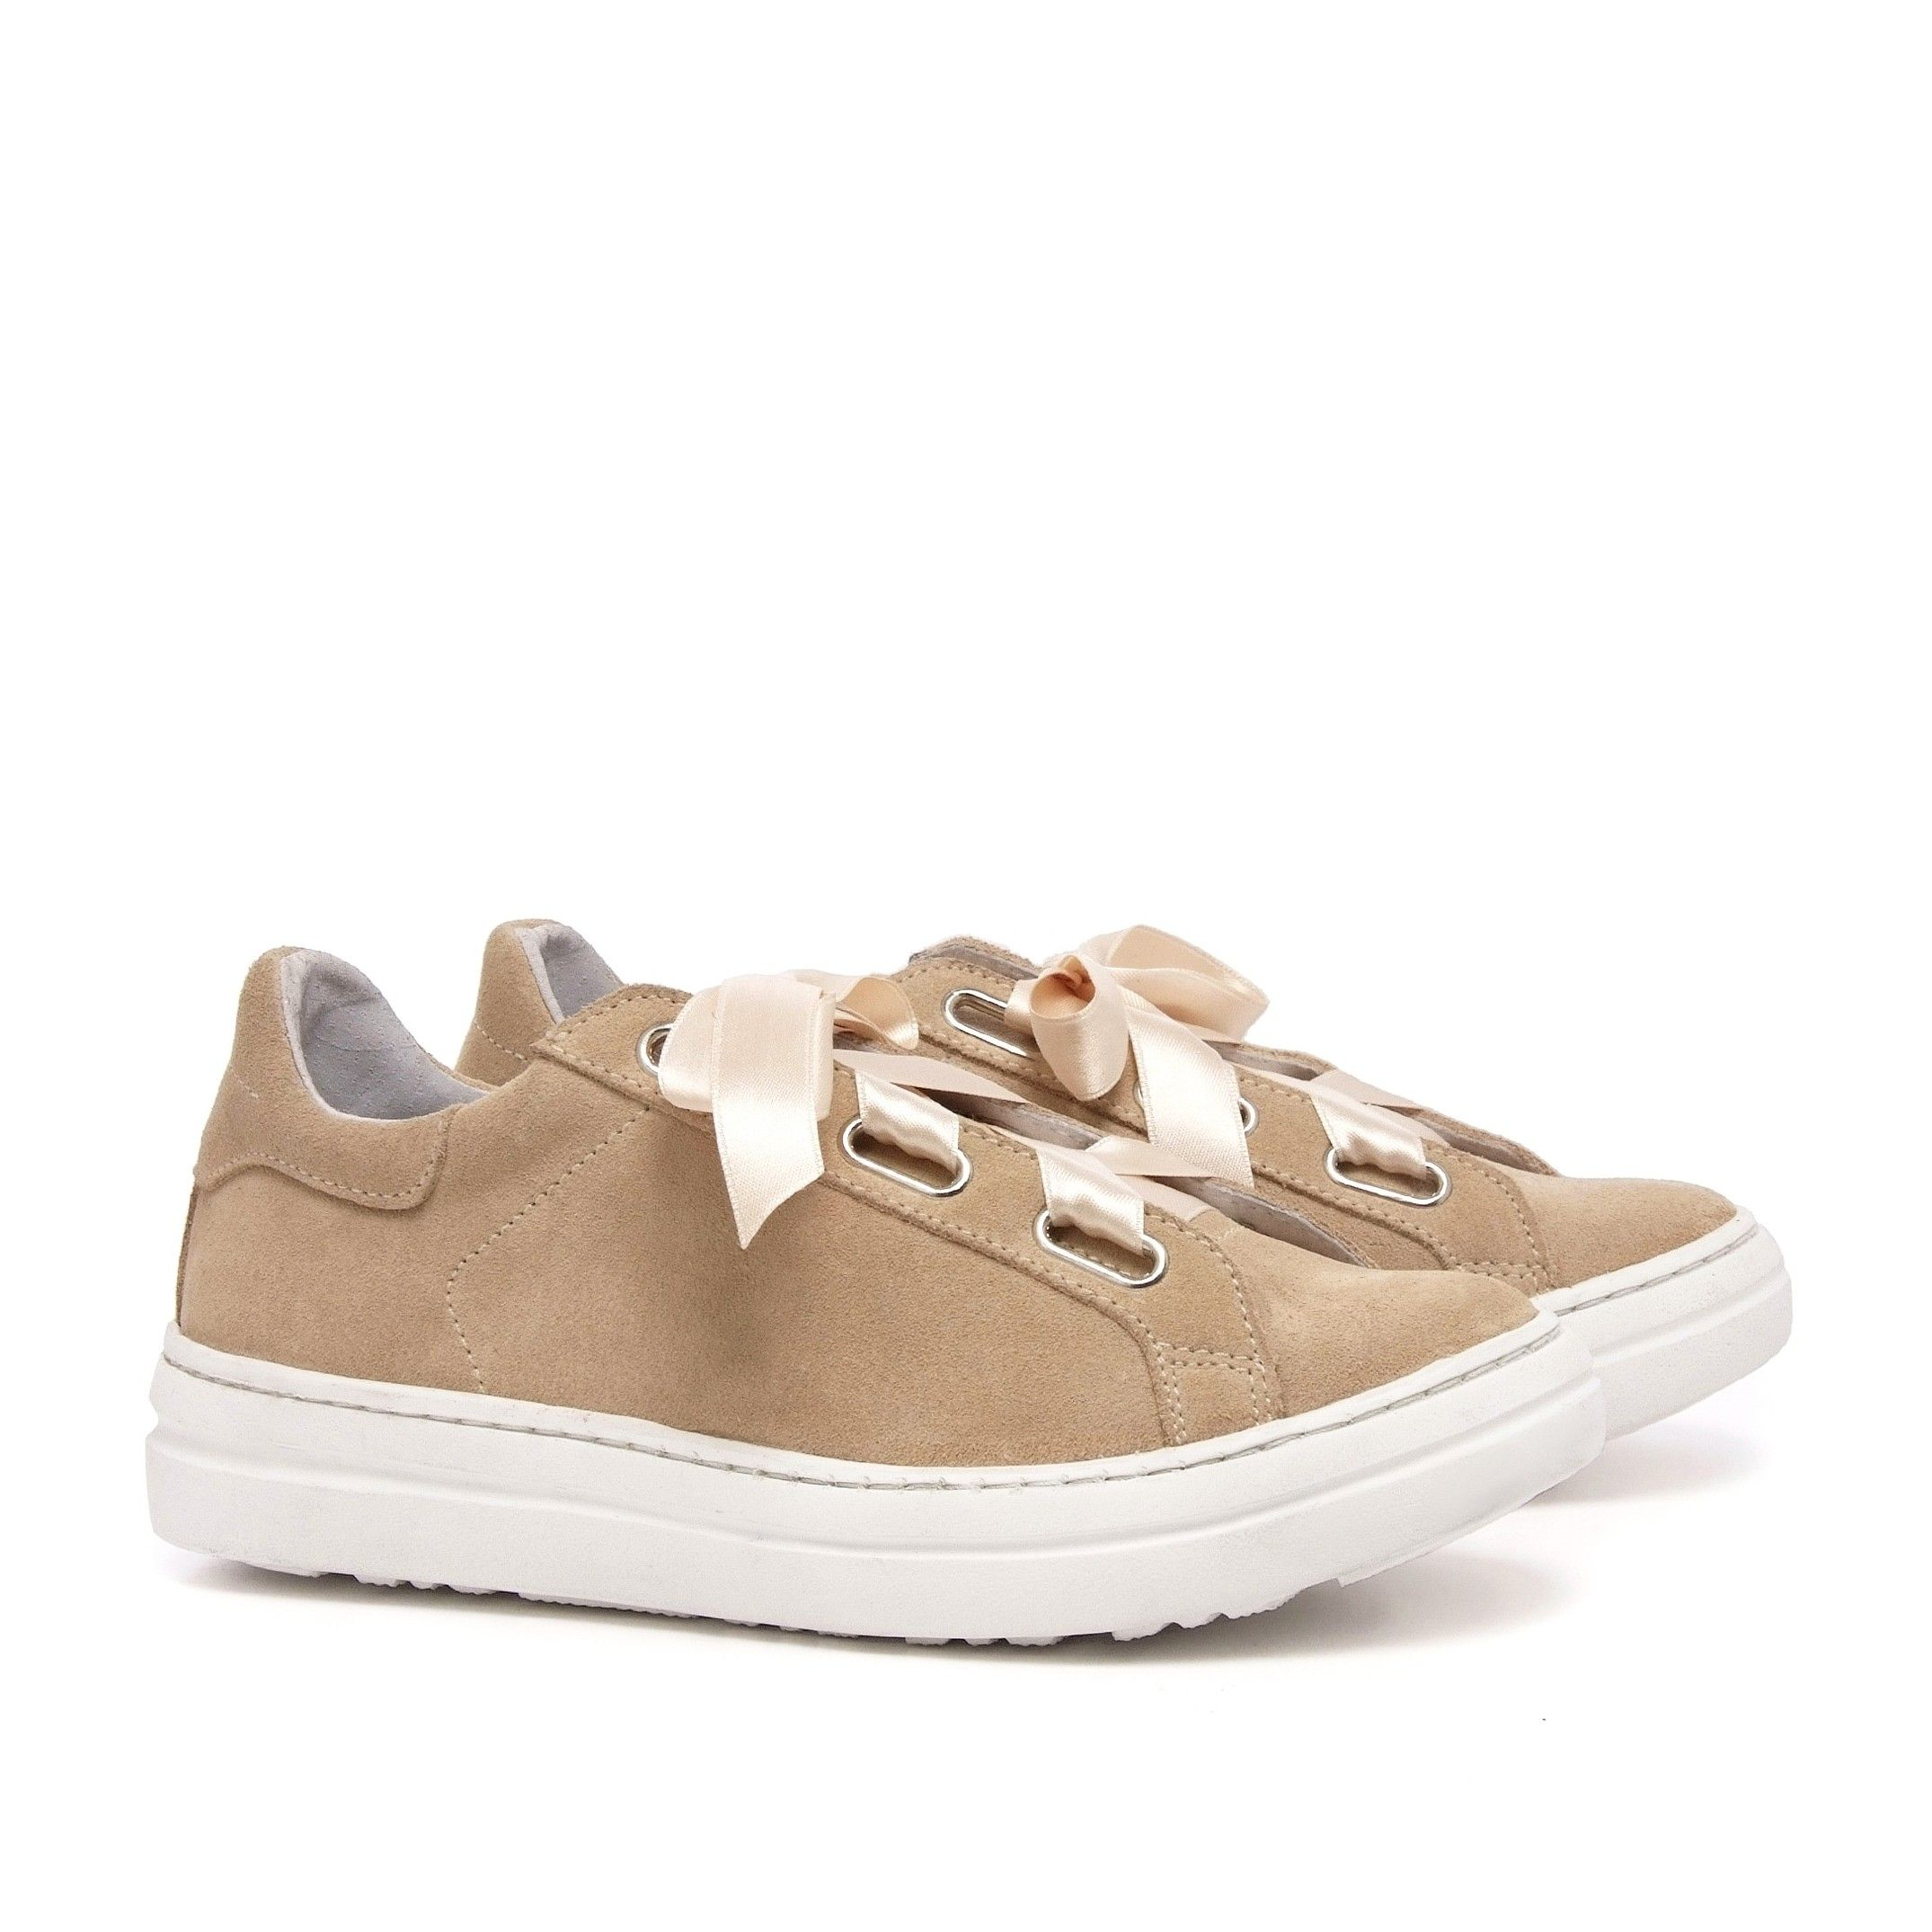 Camel Suede Leather Sneakers Women Maria Barcelo